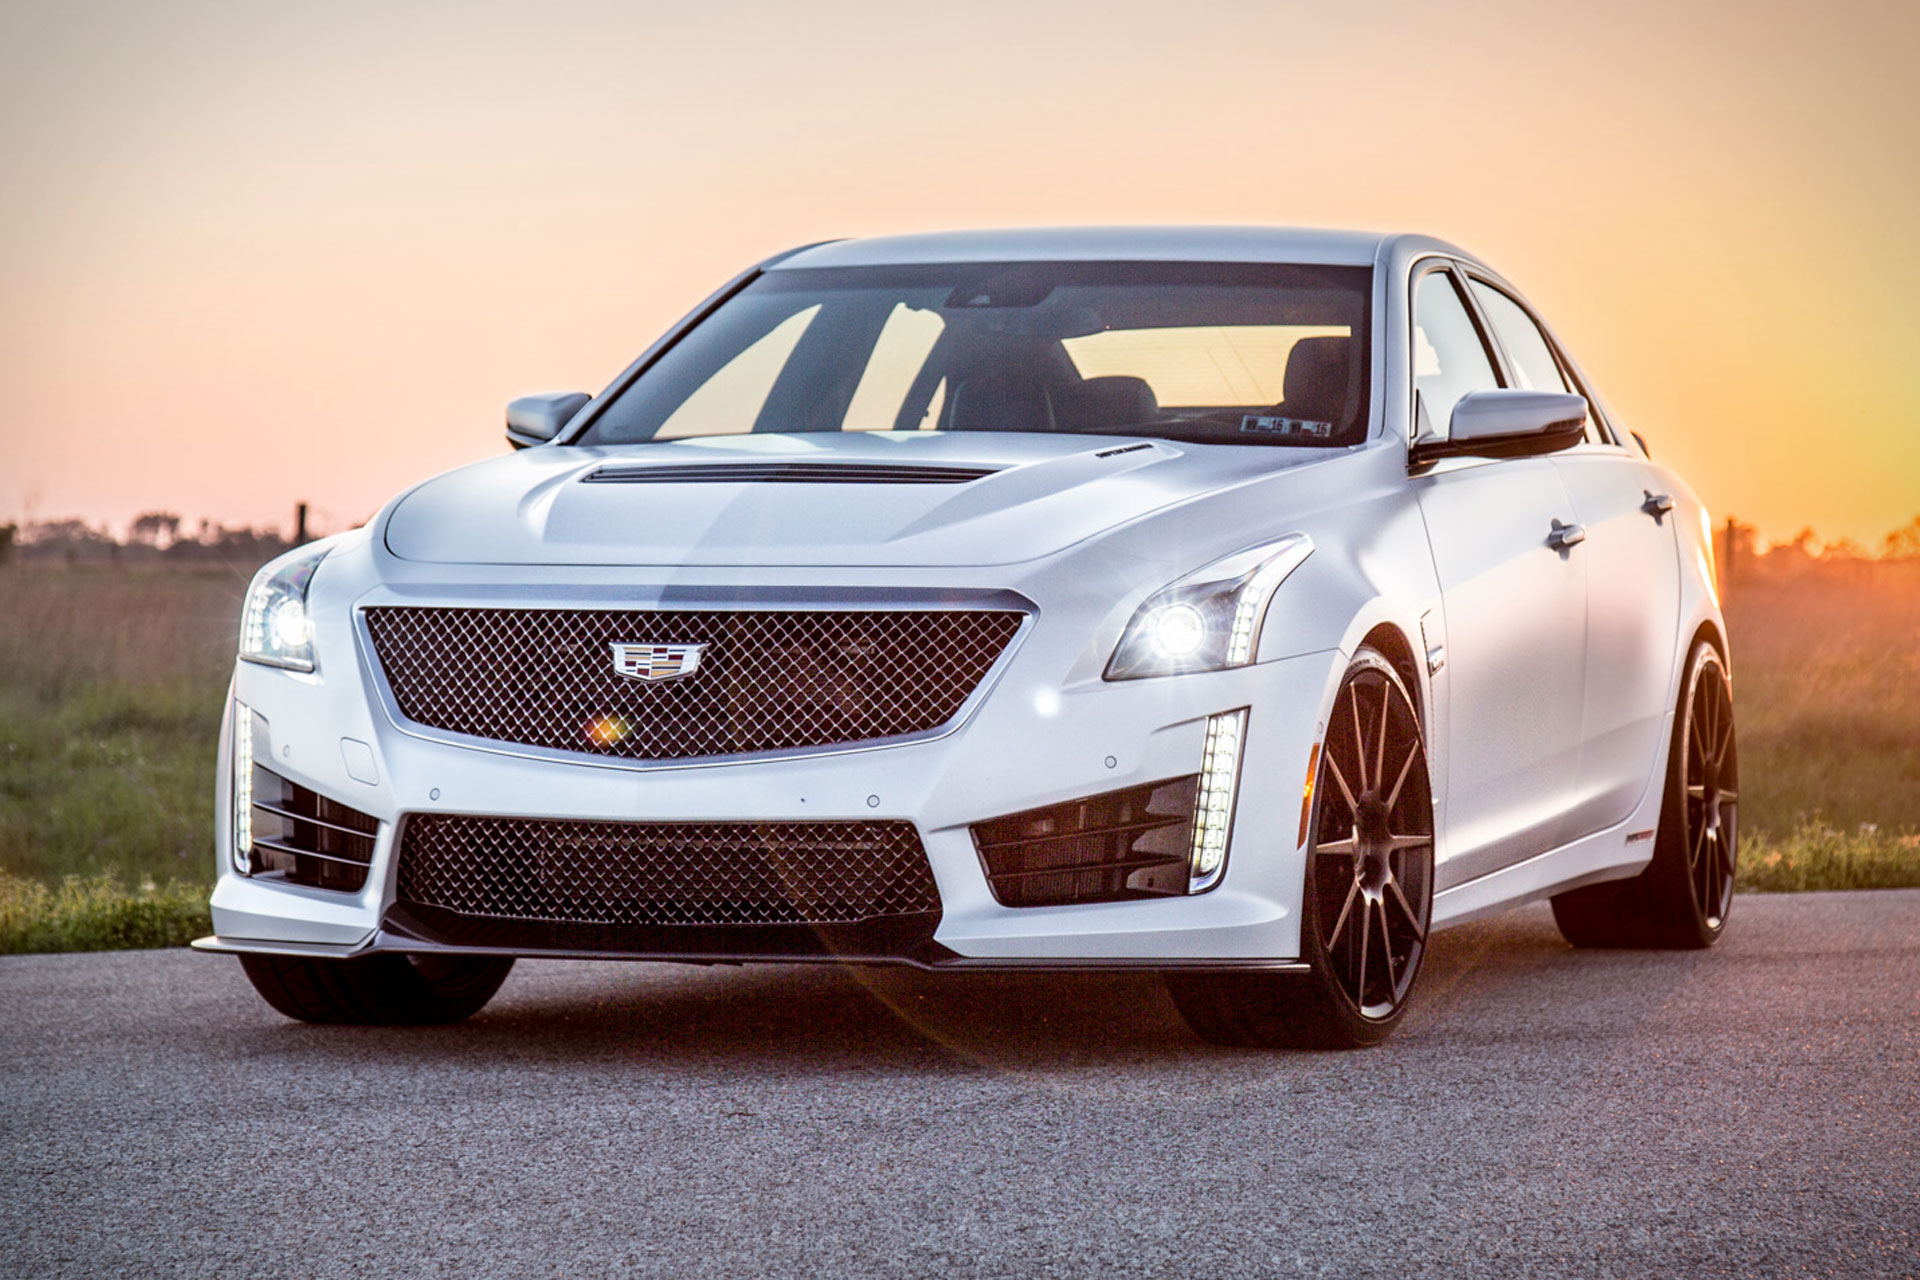 Hennessey HPE1000 Cadillac CTS-V Sedan | Uncrate